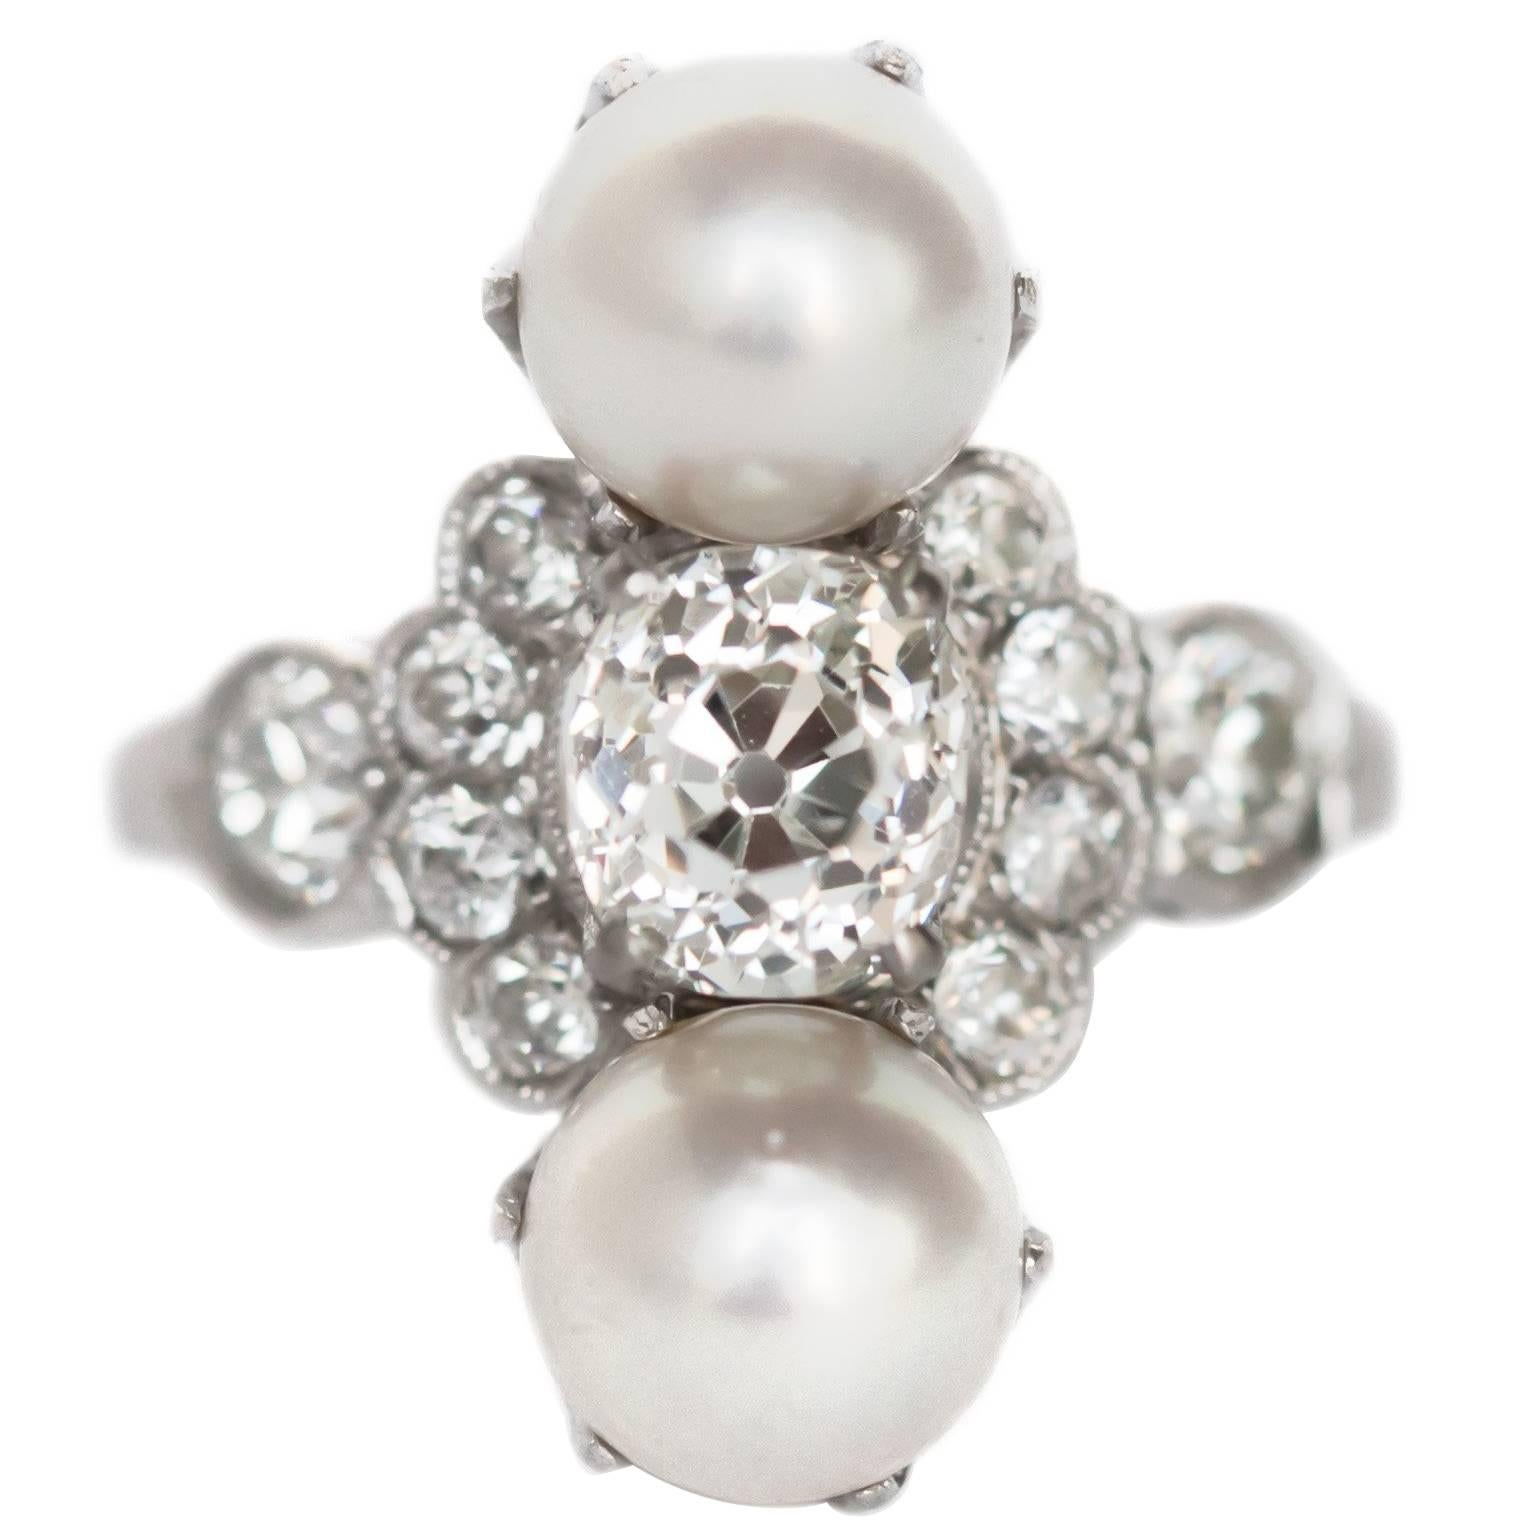 GIA Certified 1.17 Carat Diamond and Pearl Platinum Engagement Ring